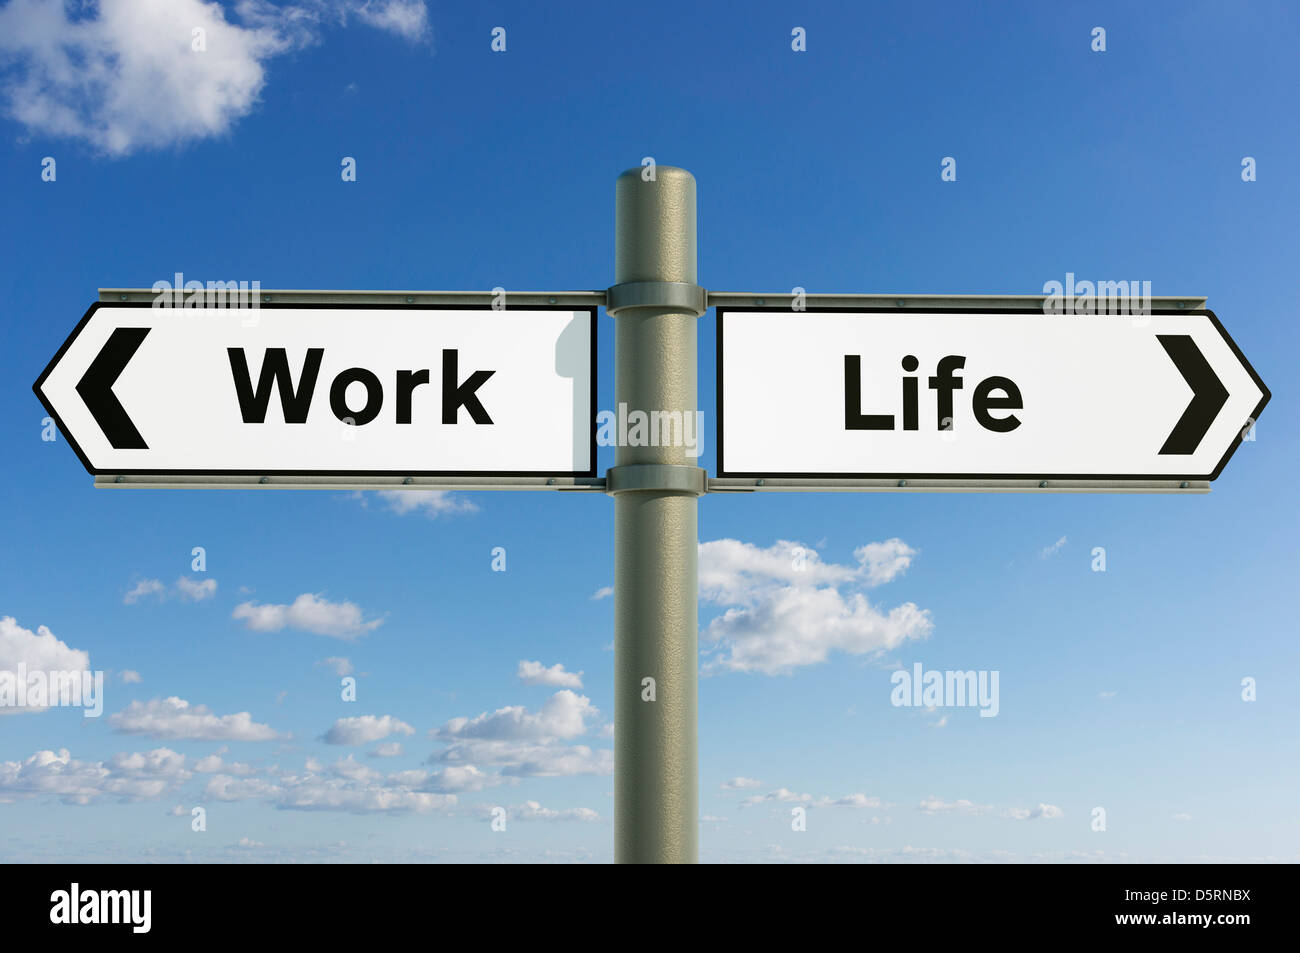 Concept sign, Work Life Balance, choice direction, directions future concept sign - Stock Image